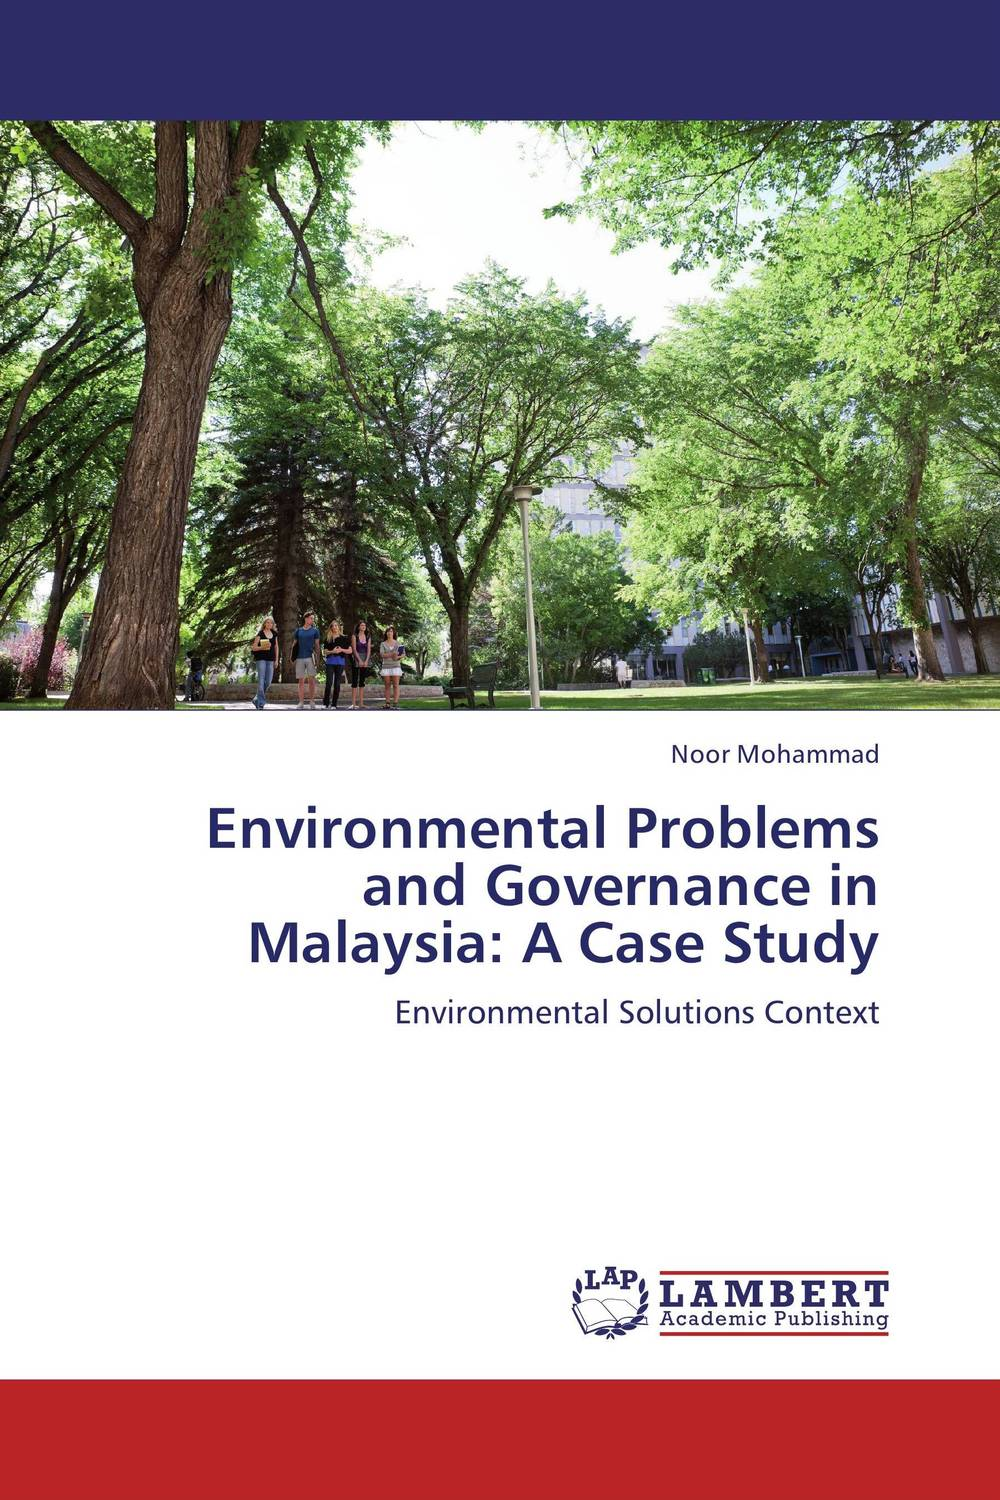 Environmental Problems and Governance in Malaysia: A Case Study